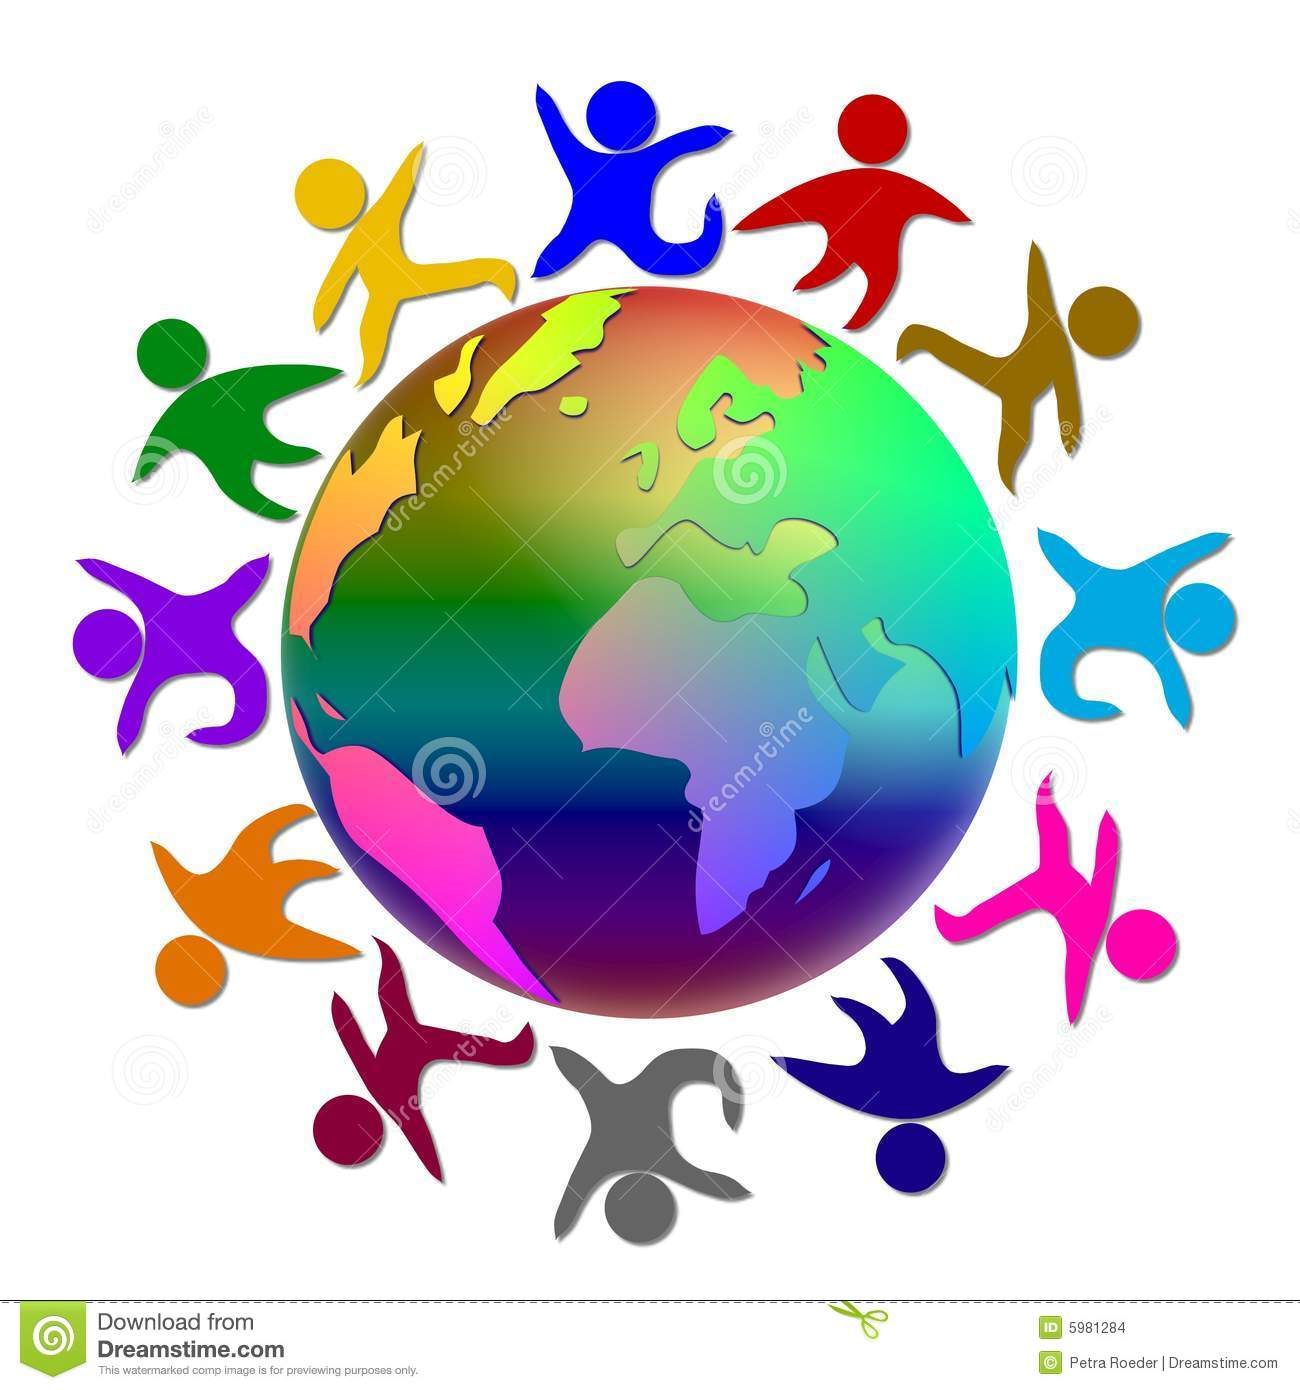 Illustration of the world with people (symbolic) dancing around it in ...